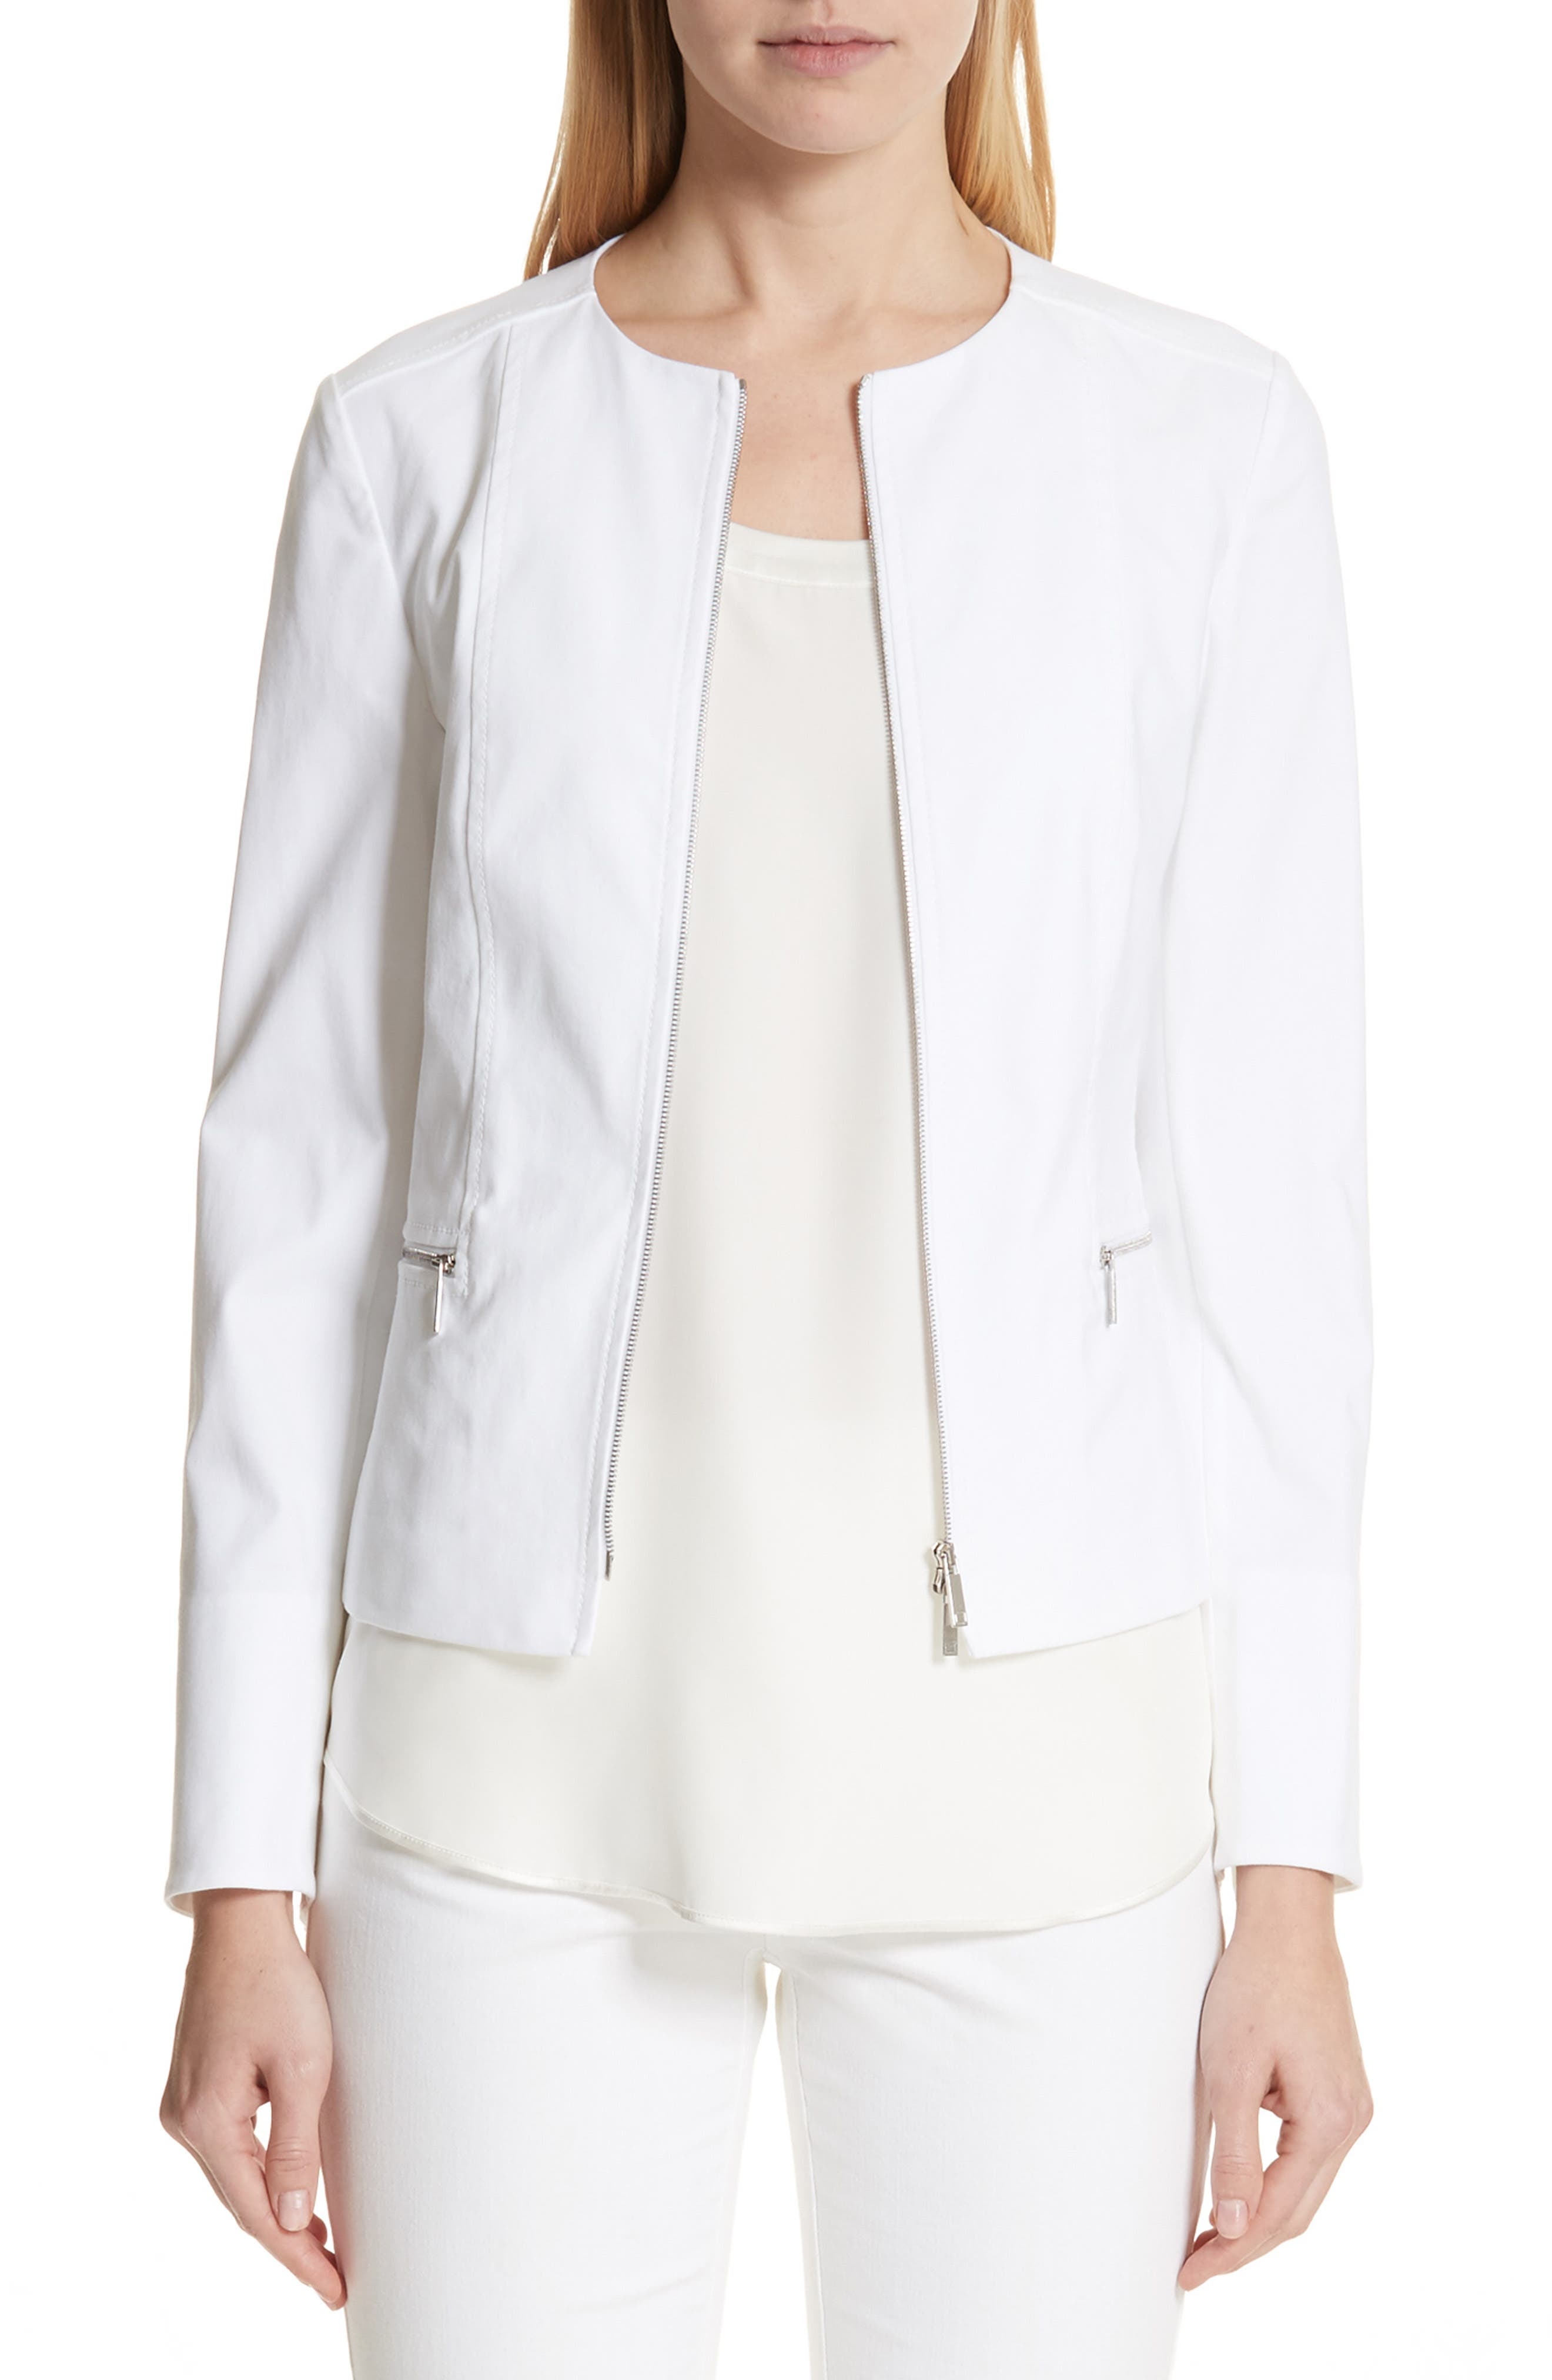 Noelle Catalina Stretch Jacket,                             Main thumbnail 1, color,                             White